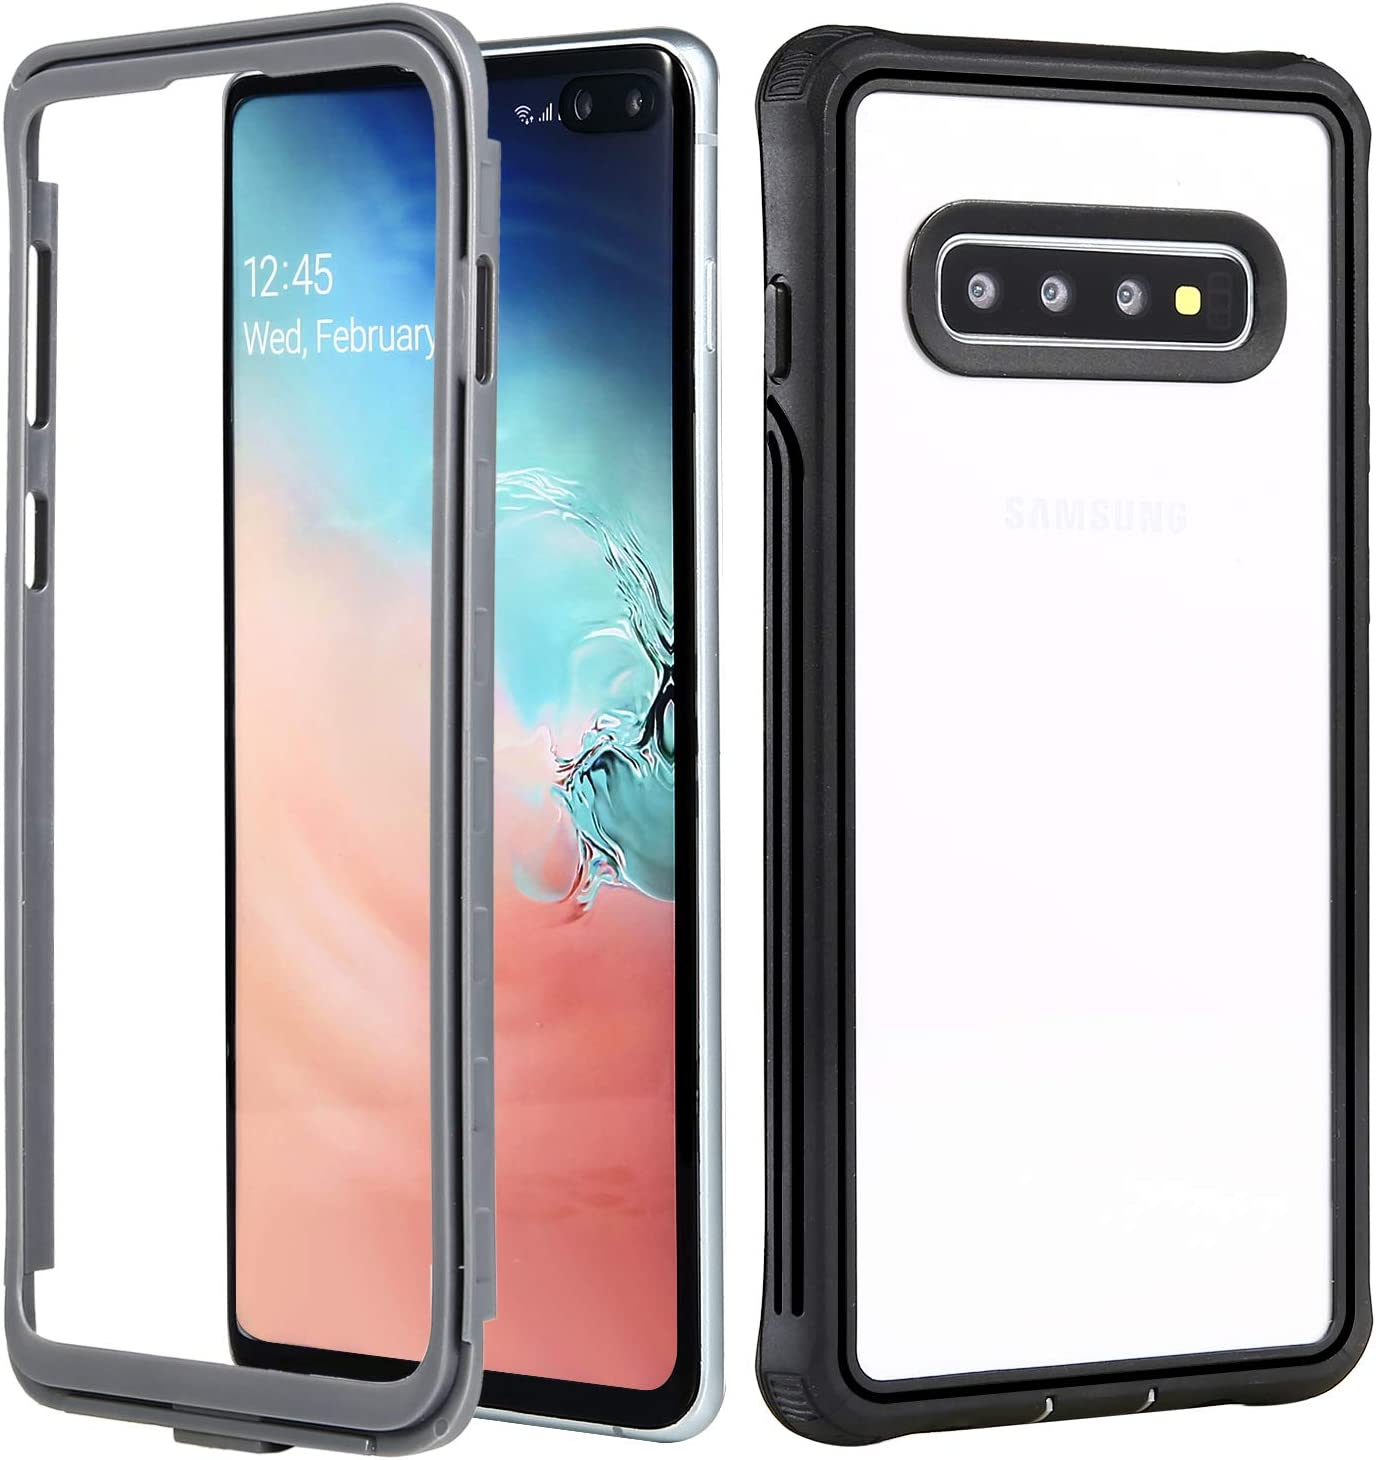 NEXGADGET Galaxy S10 Plus Case, Heavy Duty Protection with Shockproof, Dual-Layer Rugged Bumper Without Built-in Screen Protector Case for S10 Plus(Black)